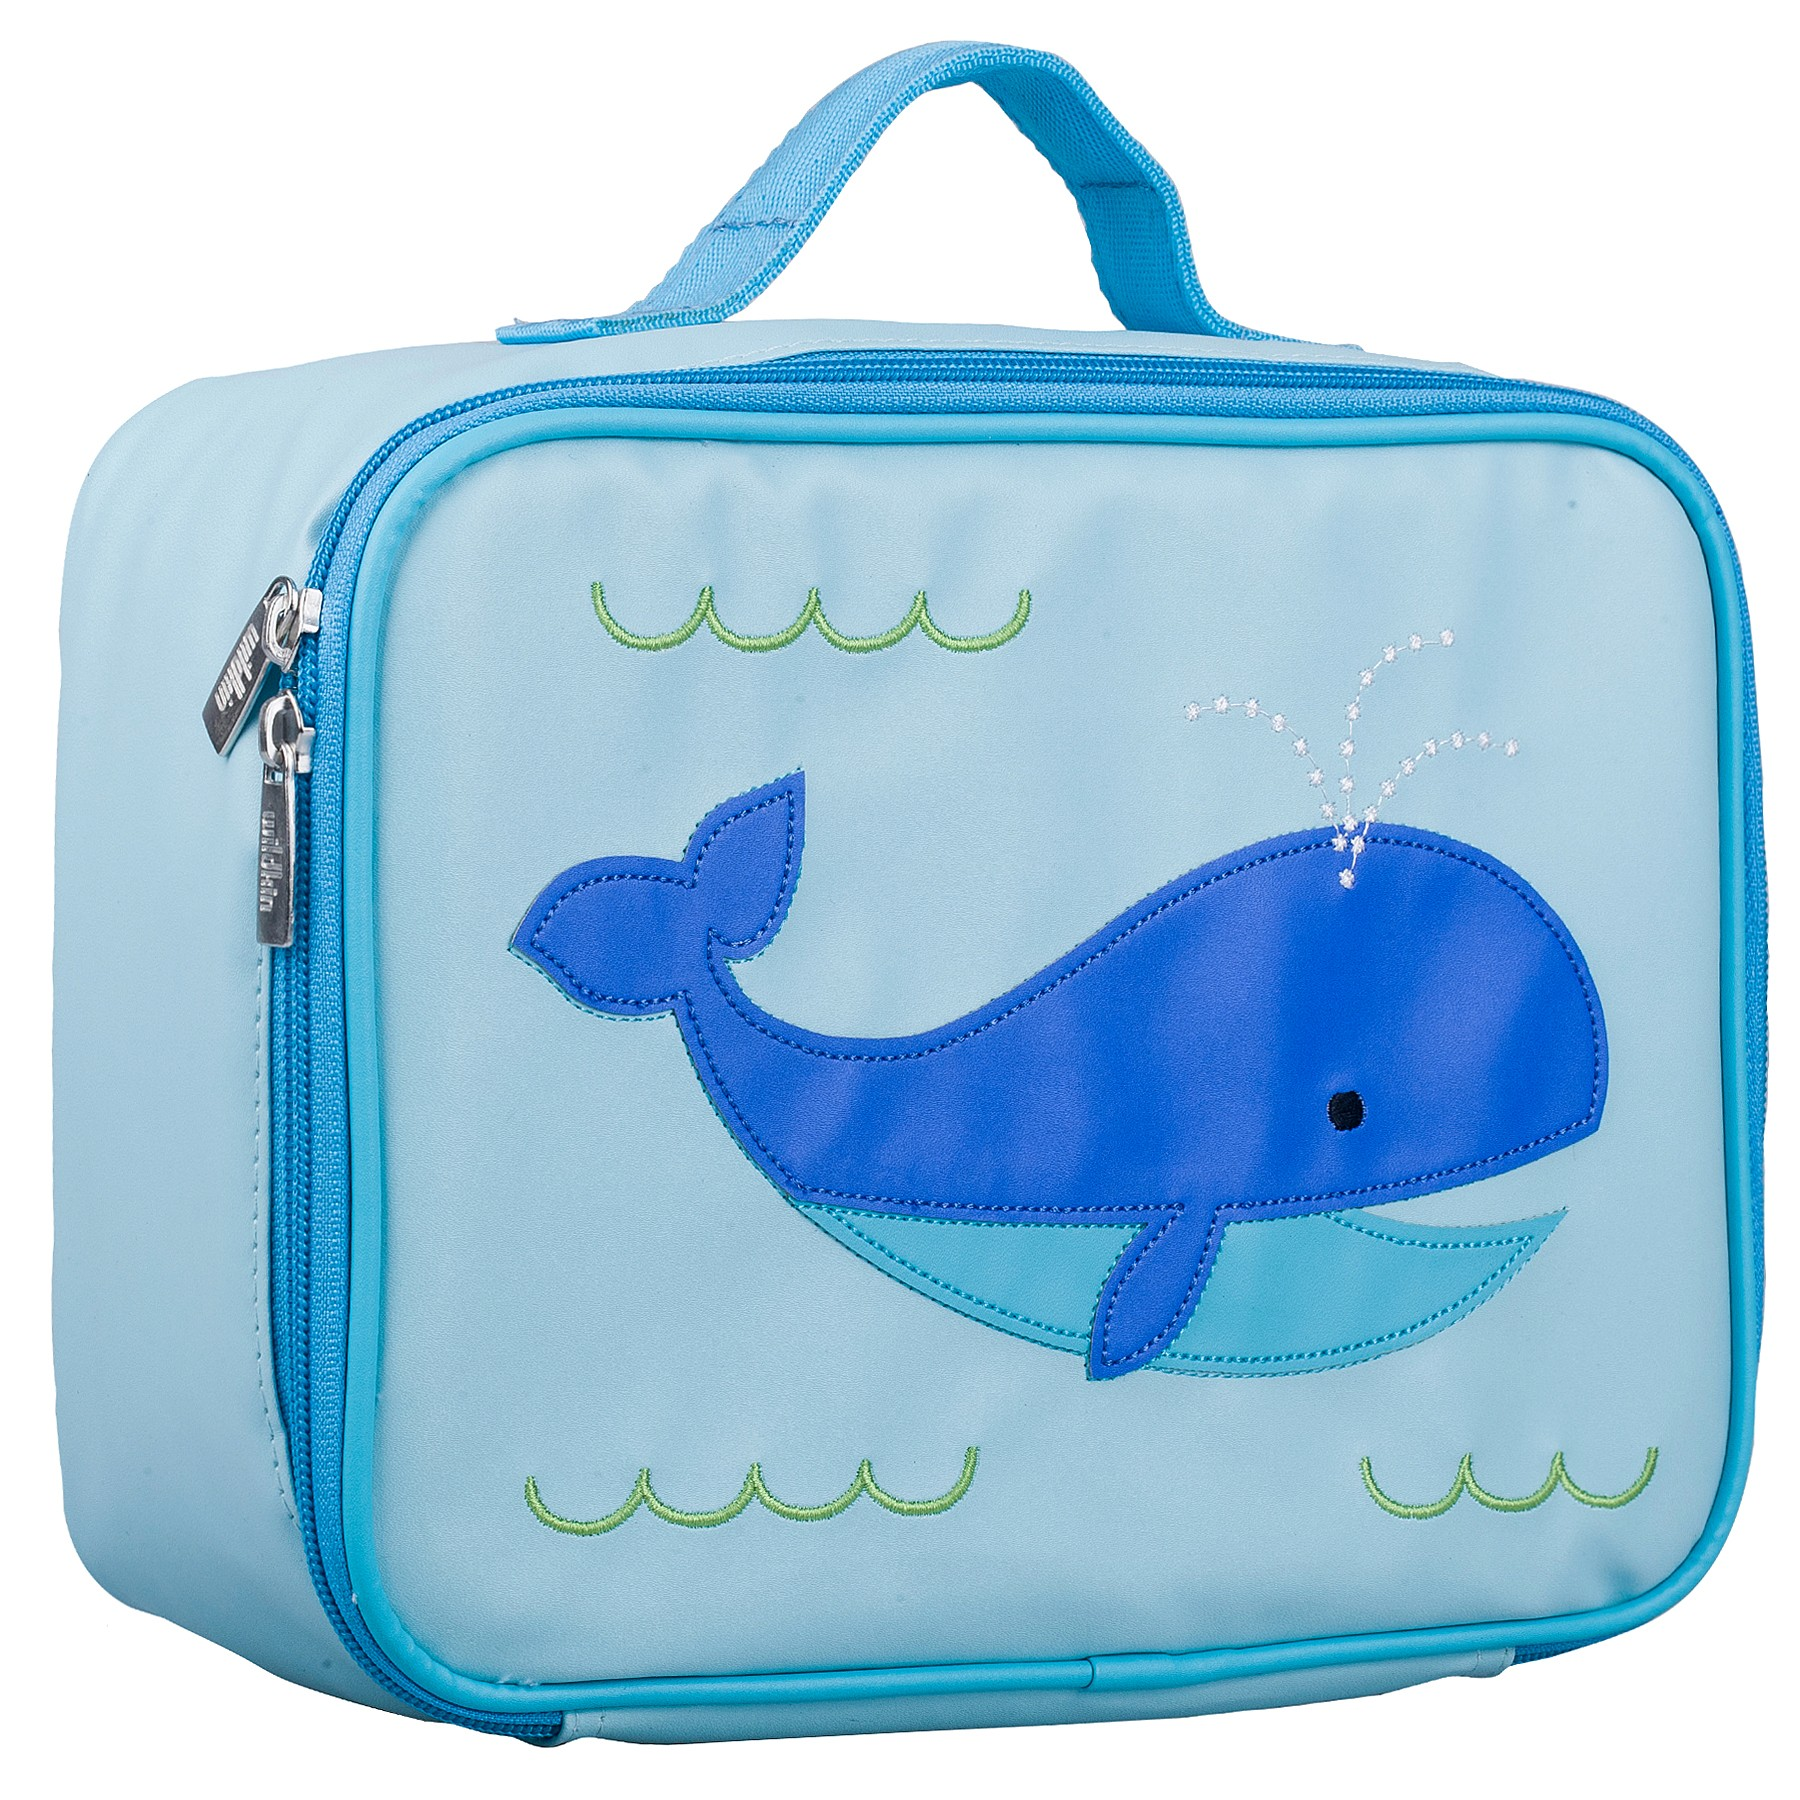 Olive Kids Whale Embroidered Lunch Box